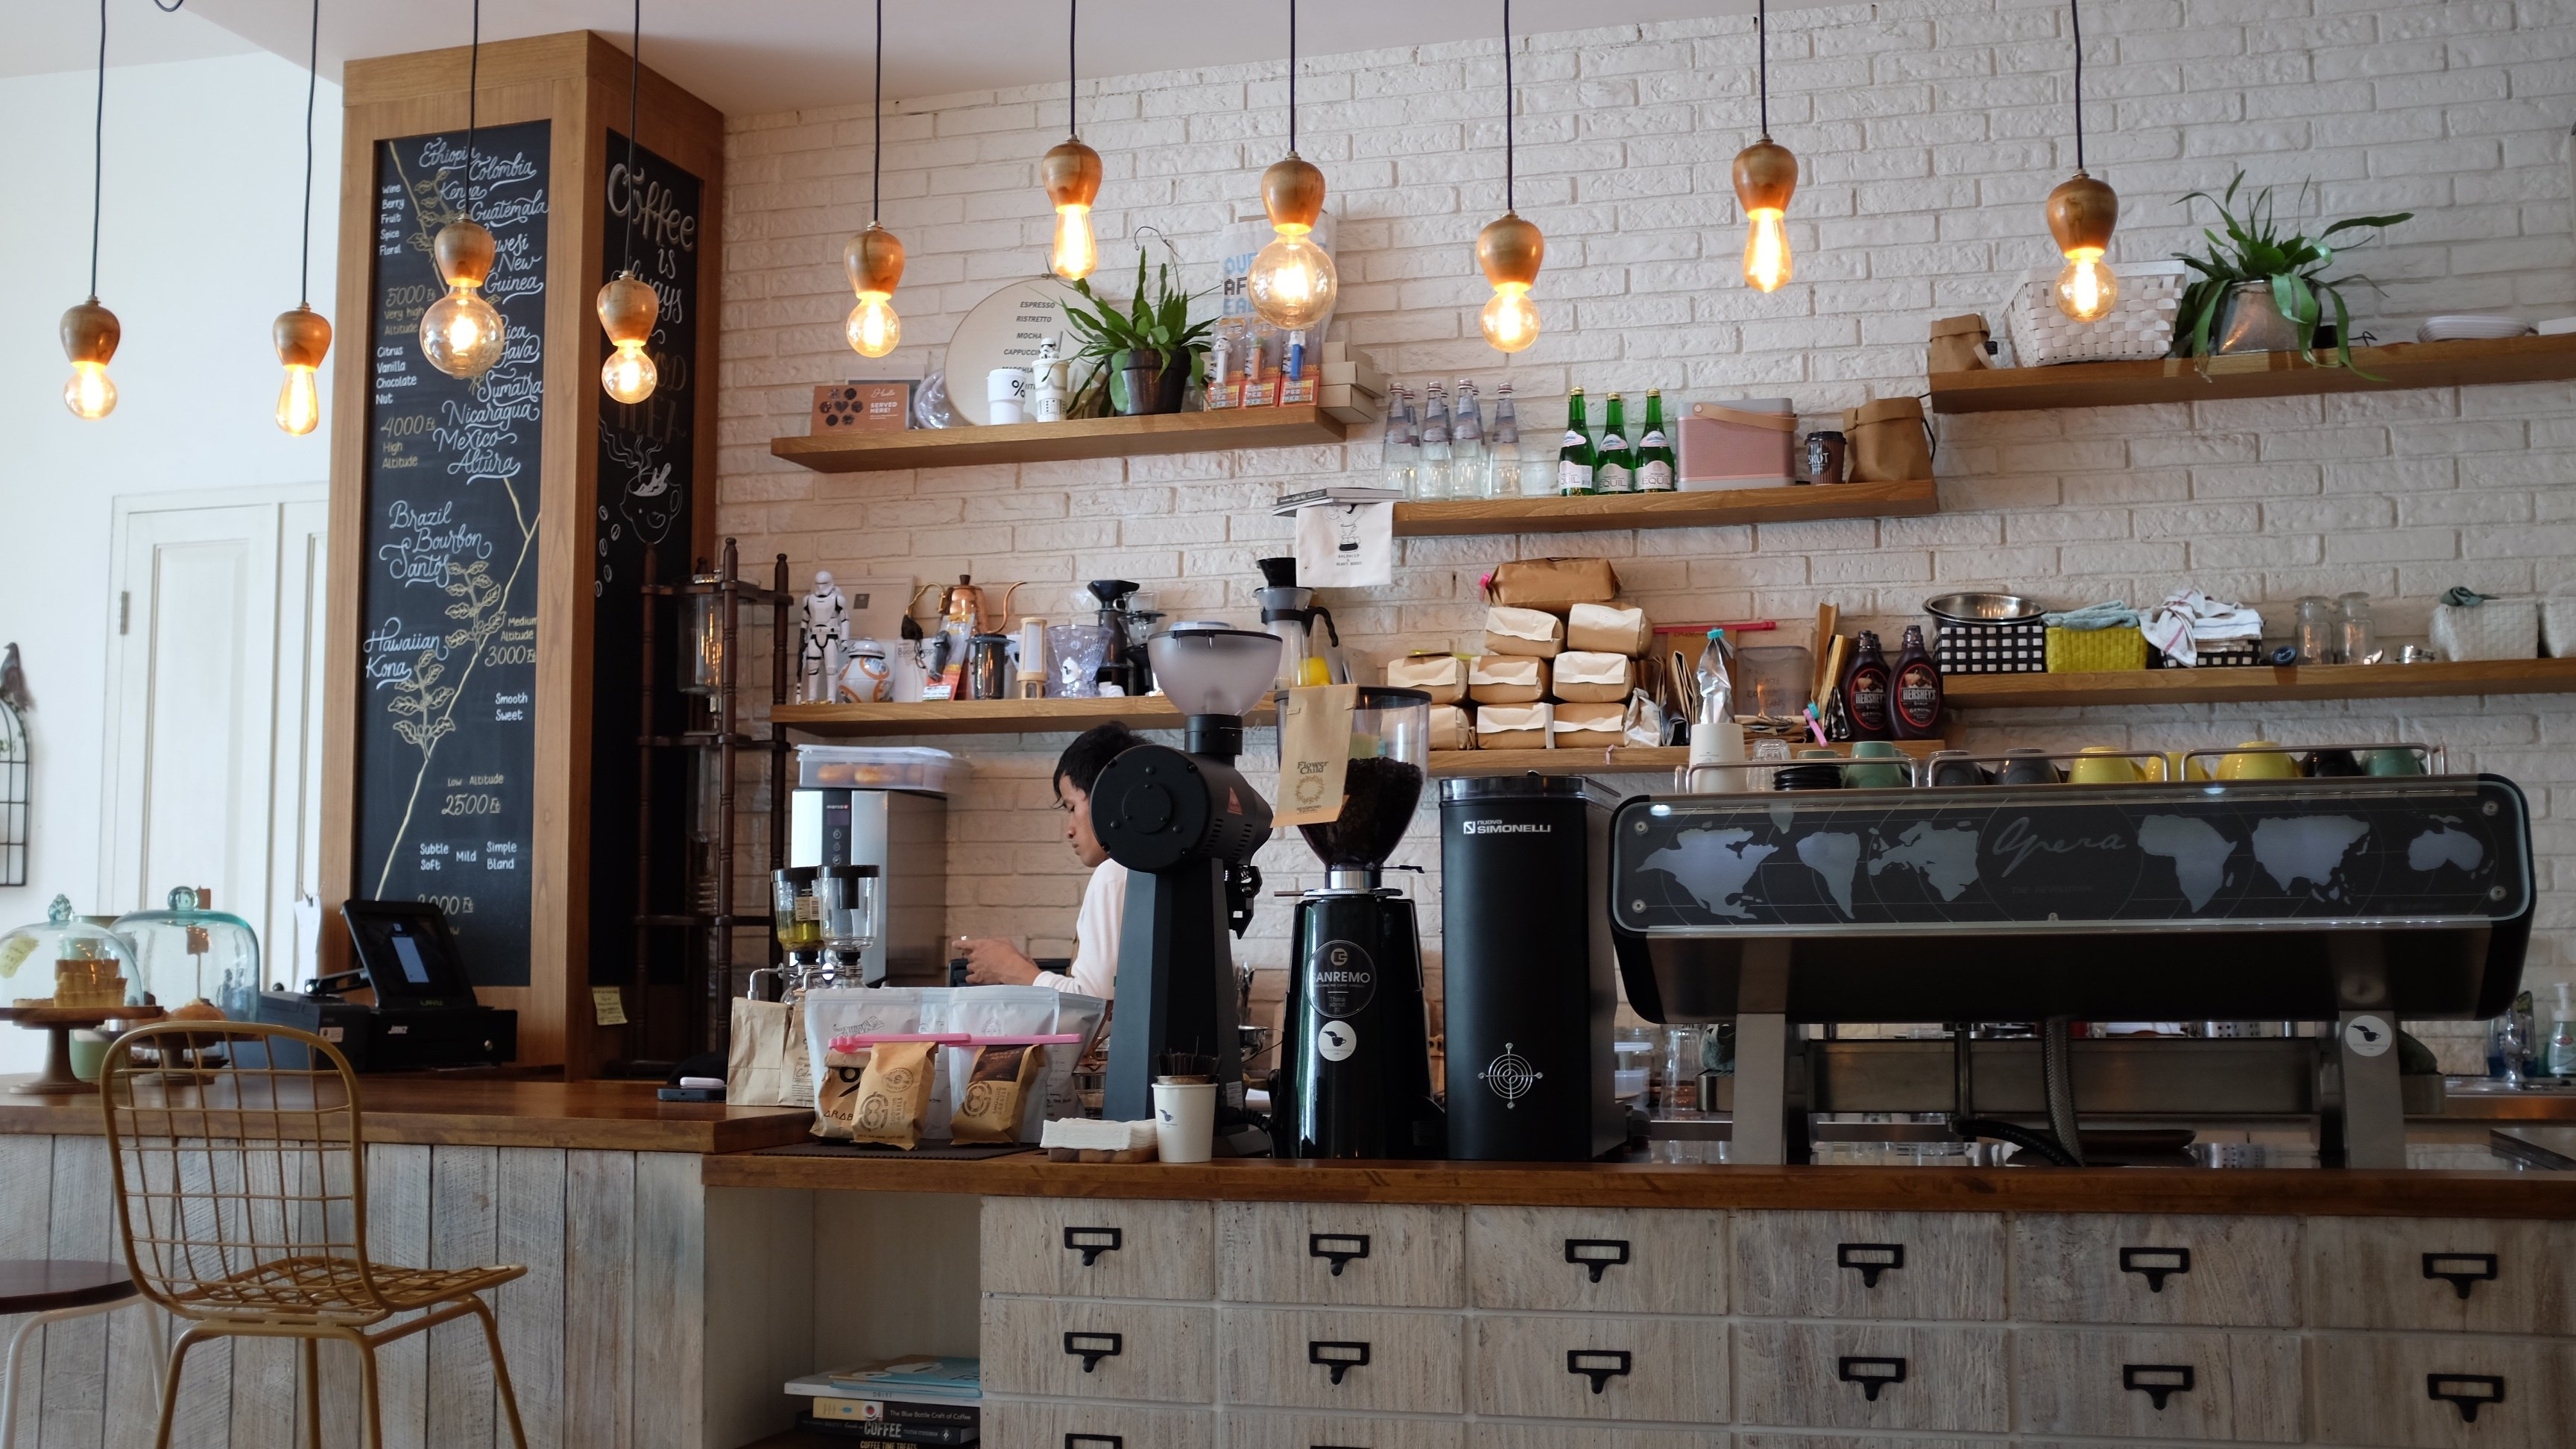 4 Tech Must-Haves for Every Coffee Shop or Cafe